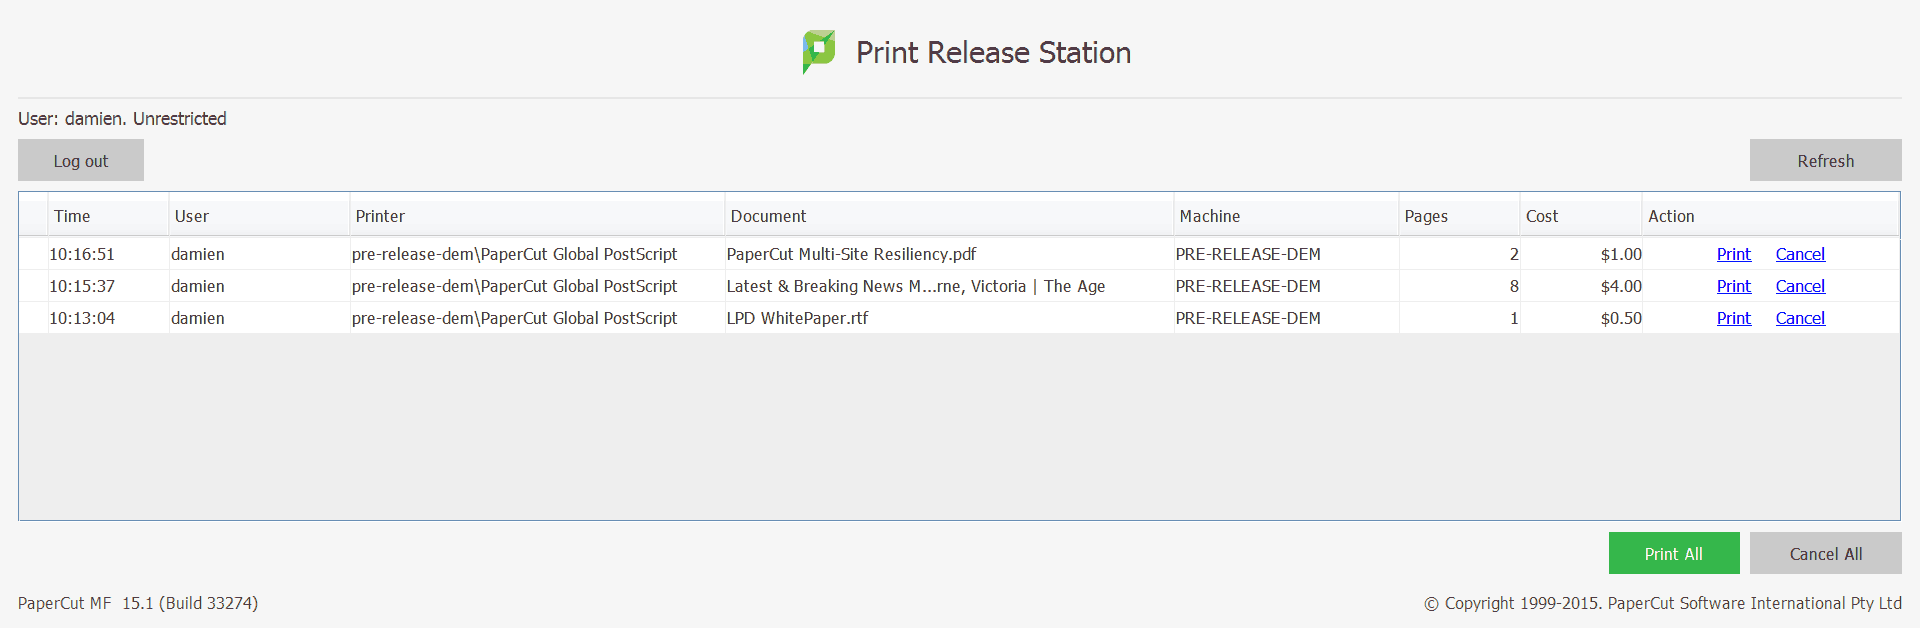 Standard print release station look